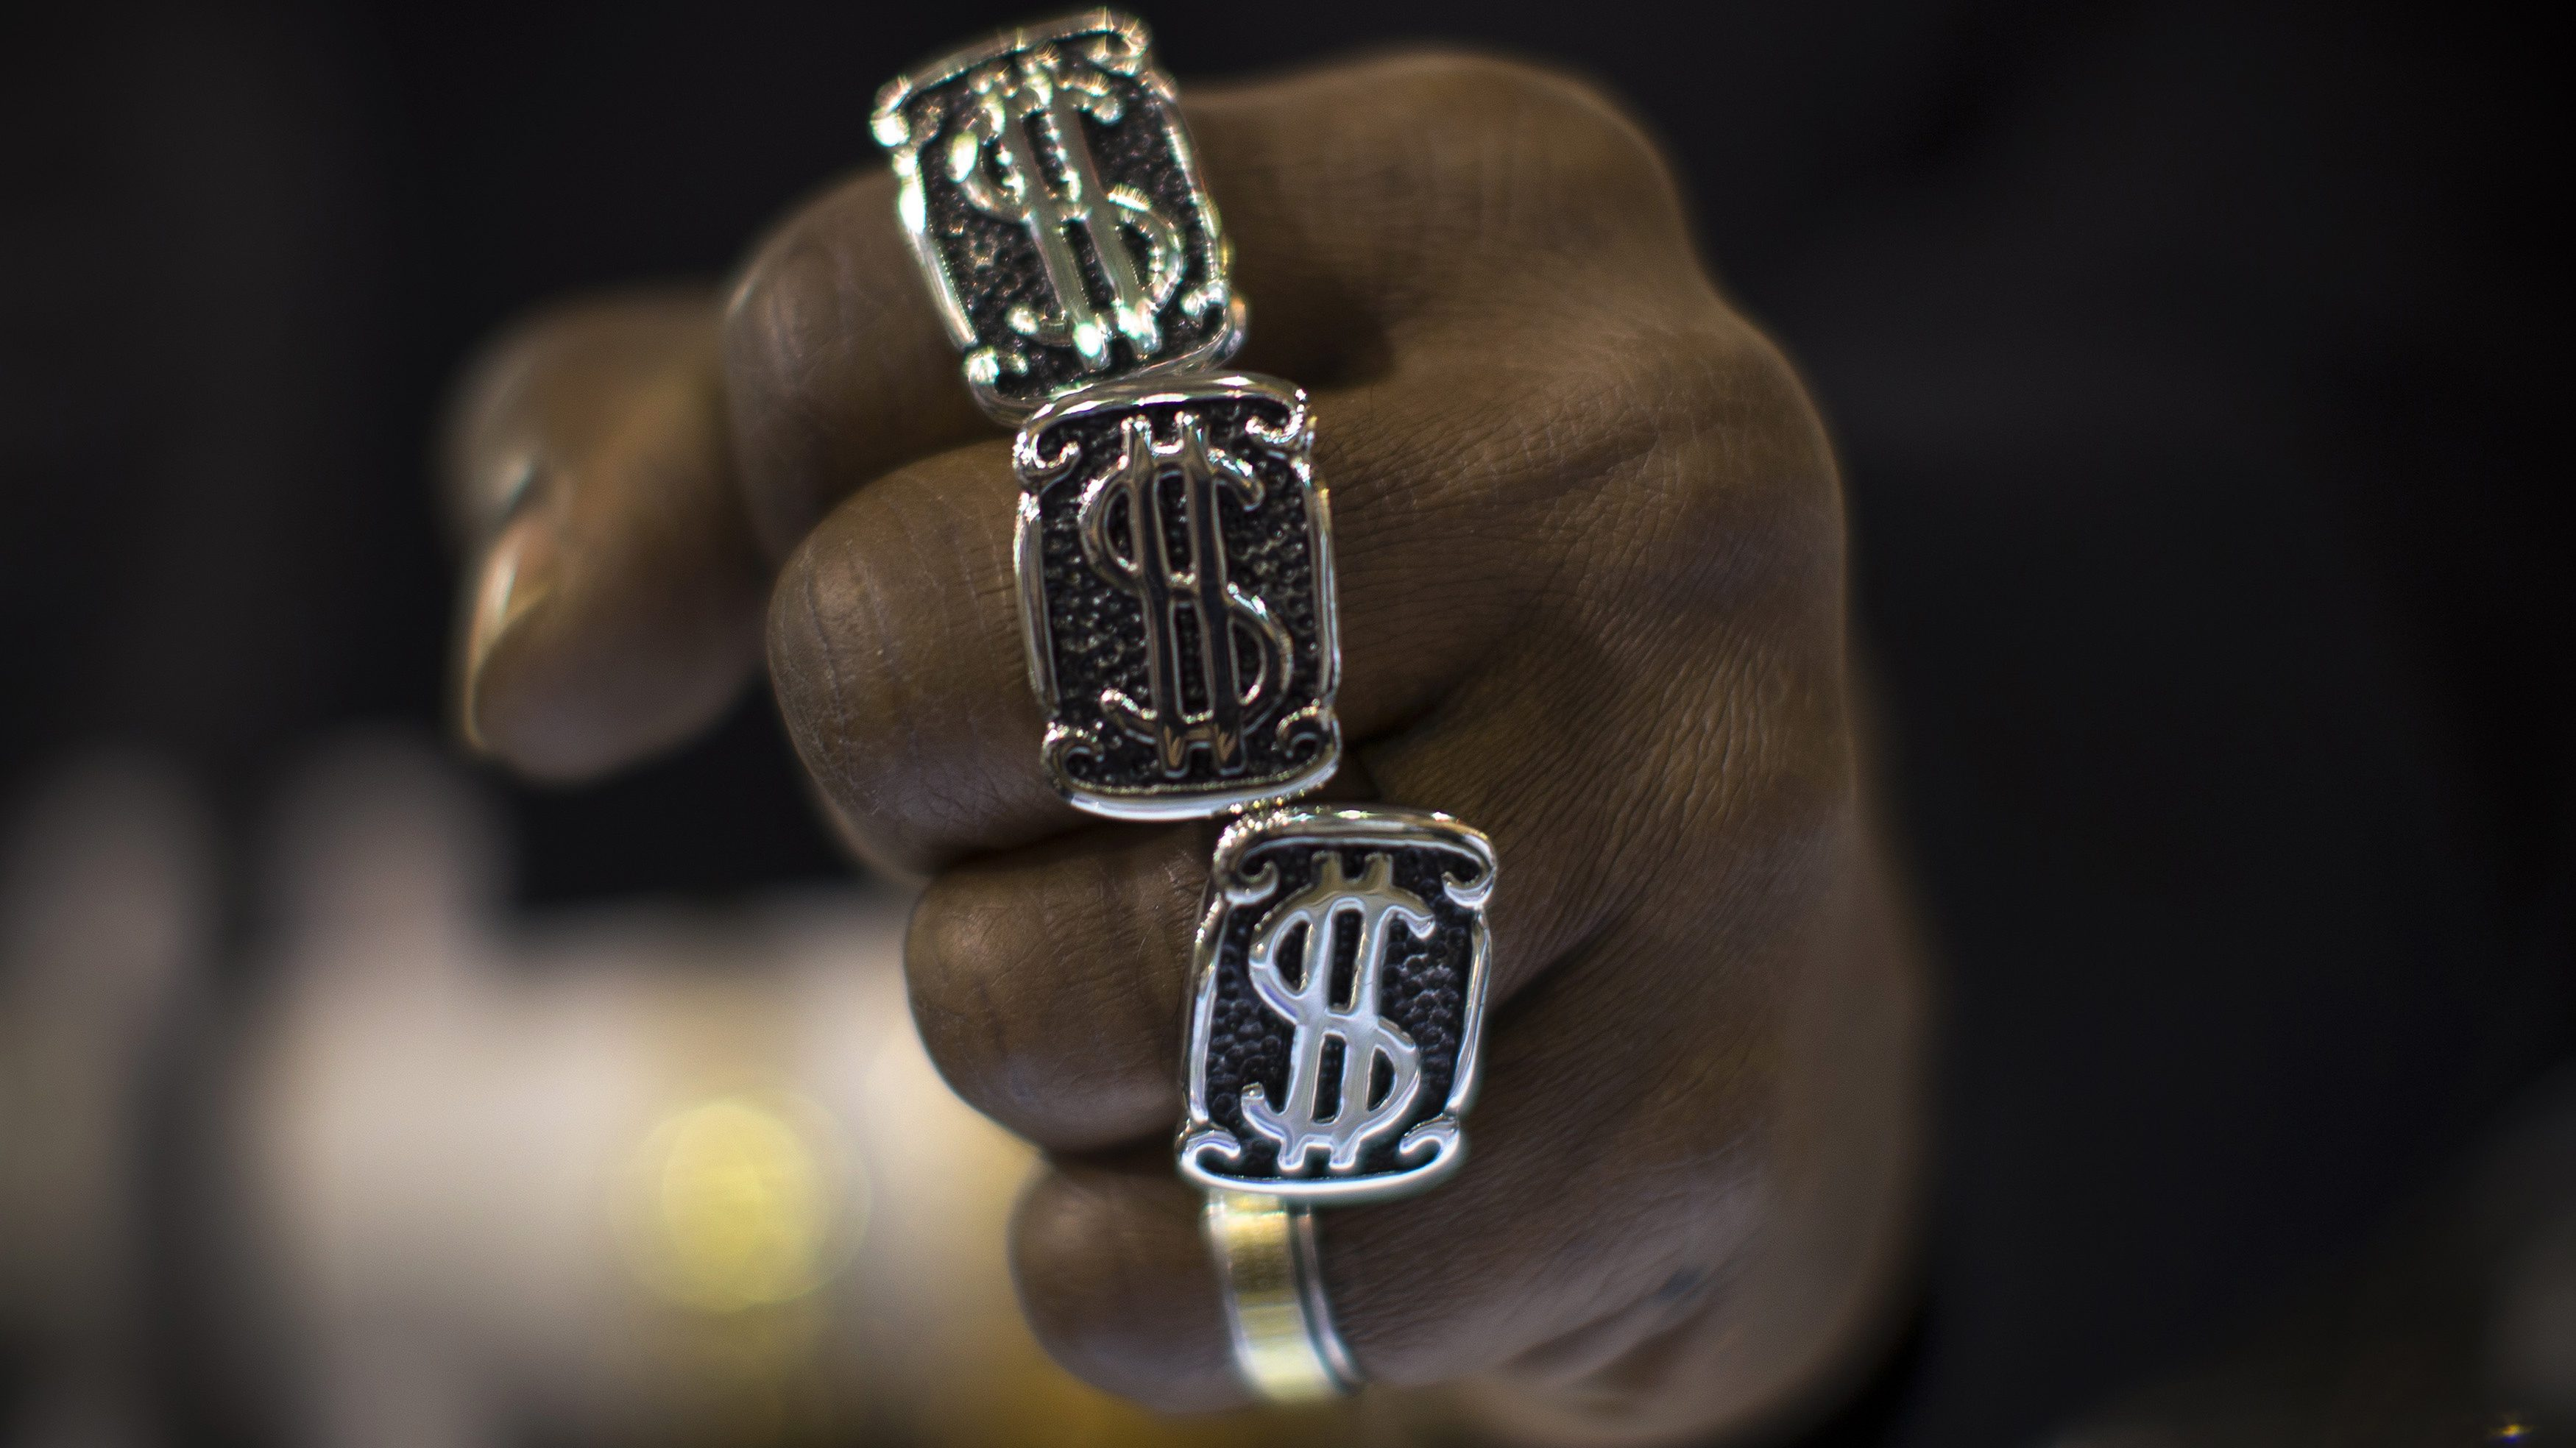 A man wears U.S. dollar sign rings in a jewellery shop in Manhattan in New York City November 6, 2014. A year-long investigation into allegations of collusion and manipulation by global currency traders is set to come to a head on Wednesday, with Britain's financial regulator and six big banks expected to agree a settlement involving around ?1.5 billion ($2.38 billion) in fines. The settlement comes amid a revival of long-dormant volatility on the foreign exchanges, where a steady rise of U.S. dollar this year has depressed oil prices and the currencies of many commodity exporters such as Russia's rouble, Brazil's real and Nigeria's naira - setting the scene for more turbulence on world financial markets in 2015.  Picture taken November 6, 2014.